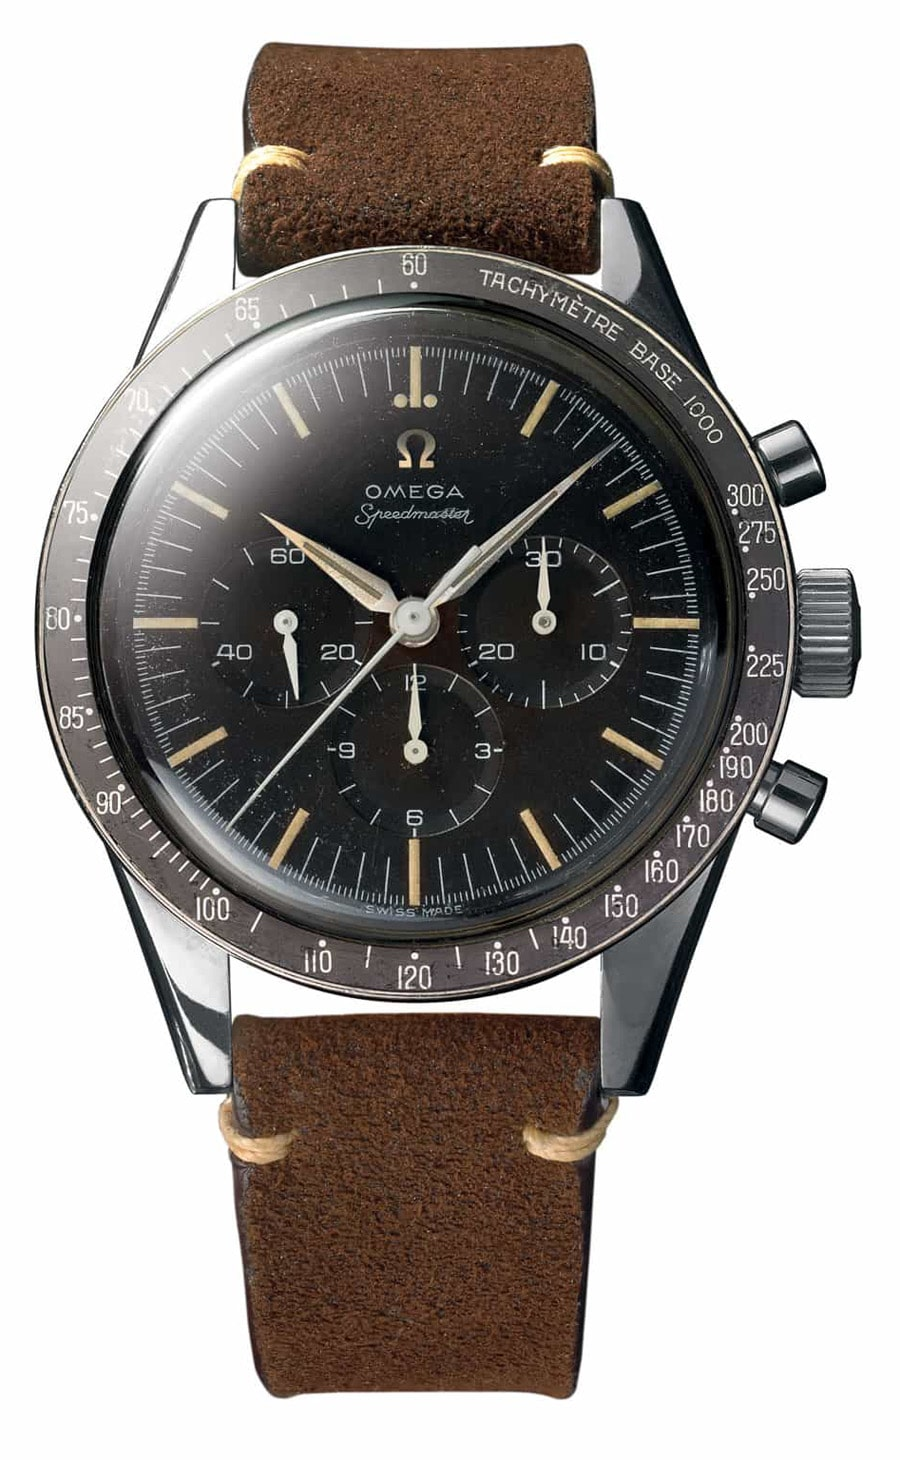 First Omega Speedmaster in Space 1959